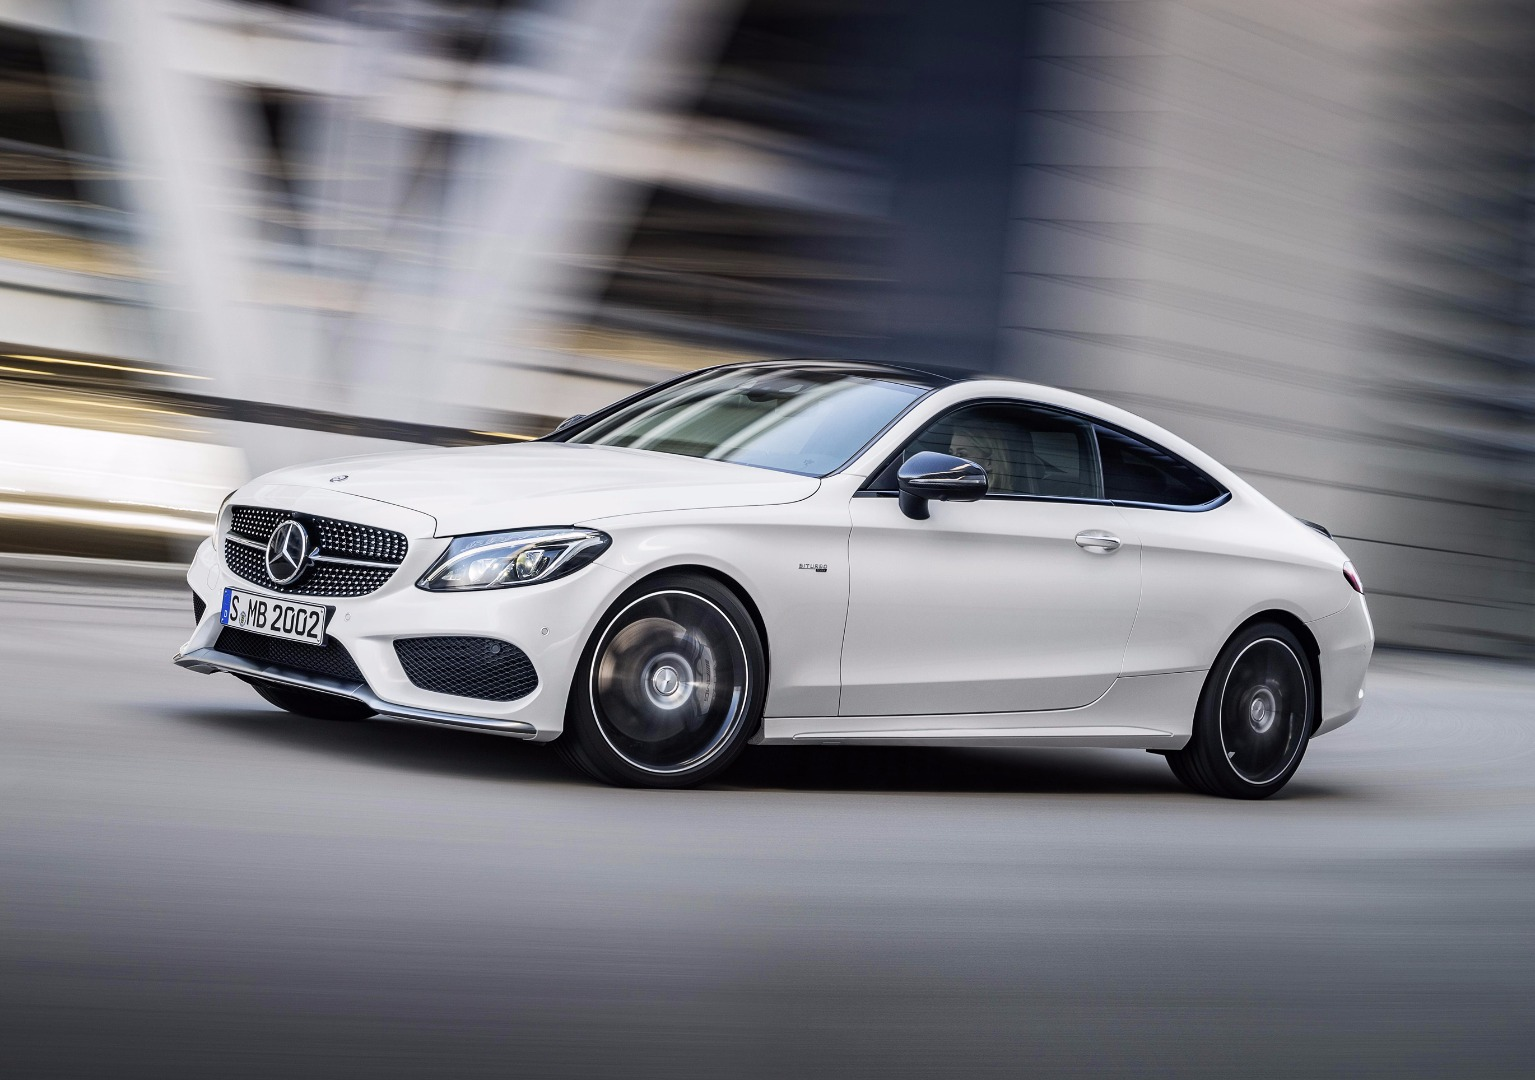 News - Pricing, Specs For Mercedes-AMG C 43 Announced For Oz